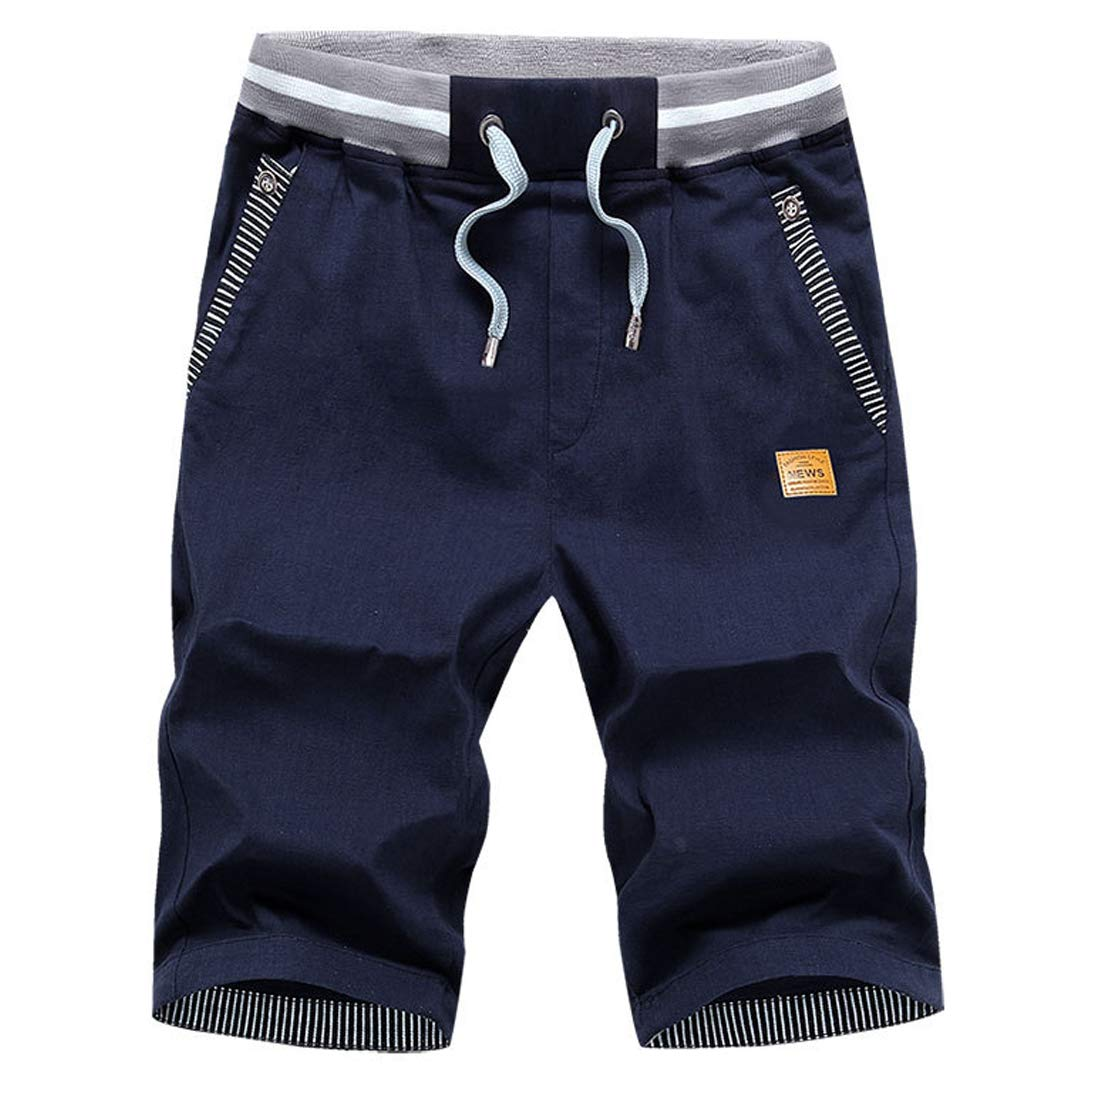 VICALLED Men's Shorts Casual Classic Fit Summer Beach Zipper Pockets Elastic Waist Shorts Dark Blue by VICALLED